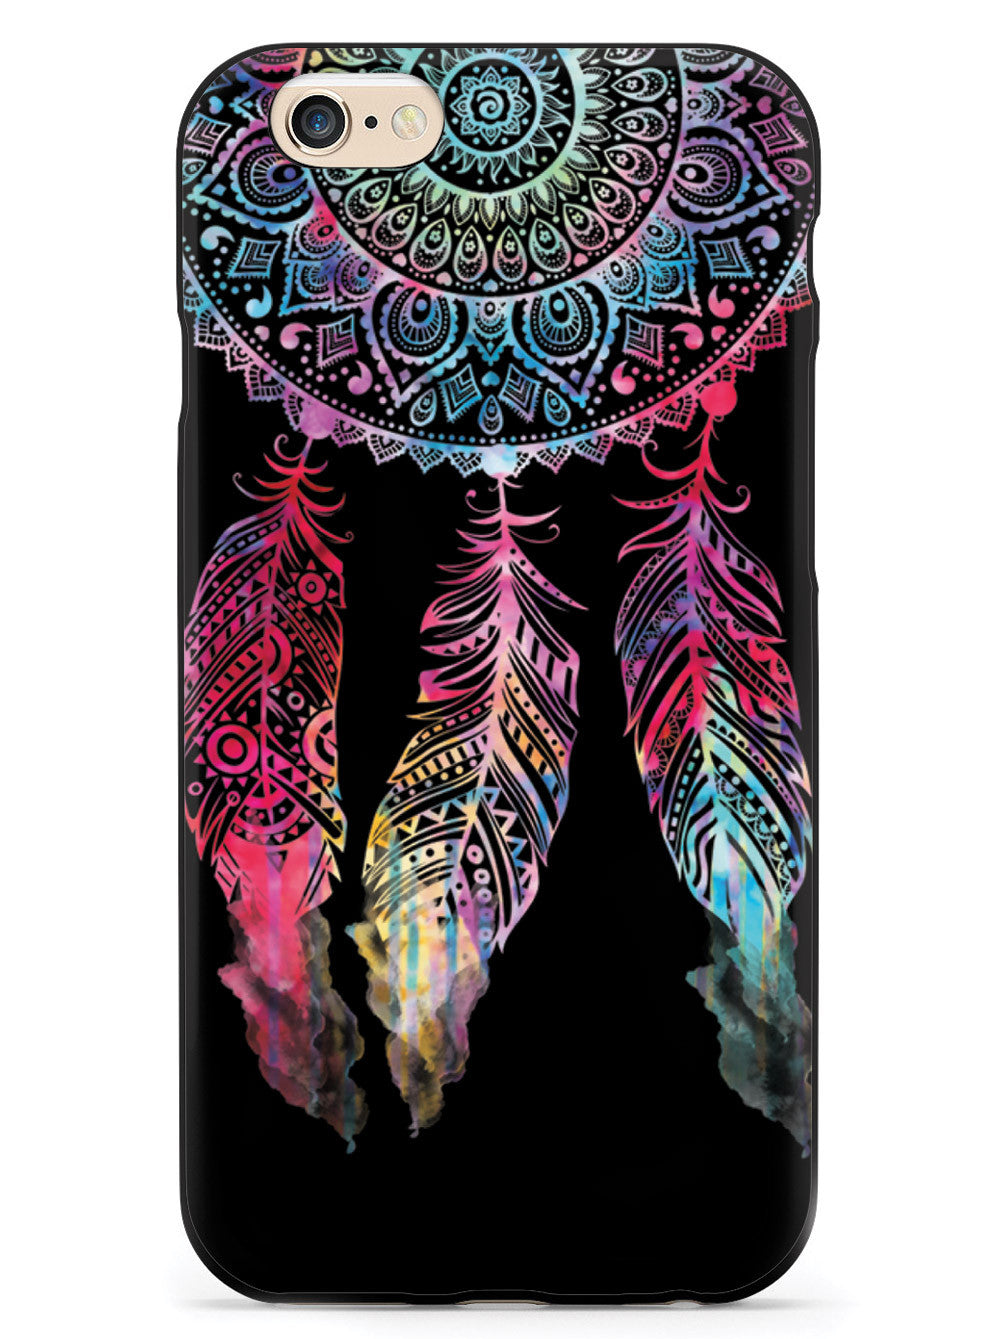 Dark Watercolor Dreamcatcher Spiritual Native American Case